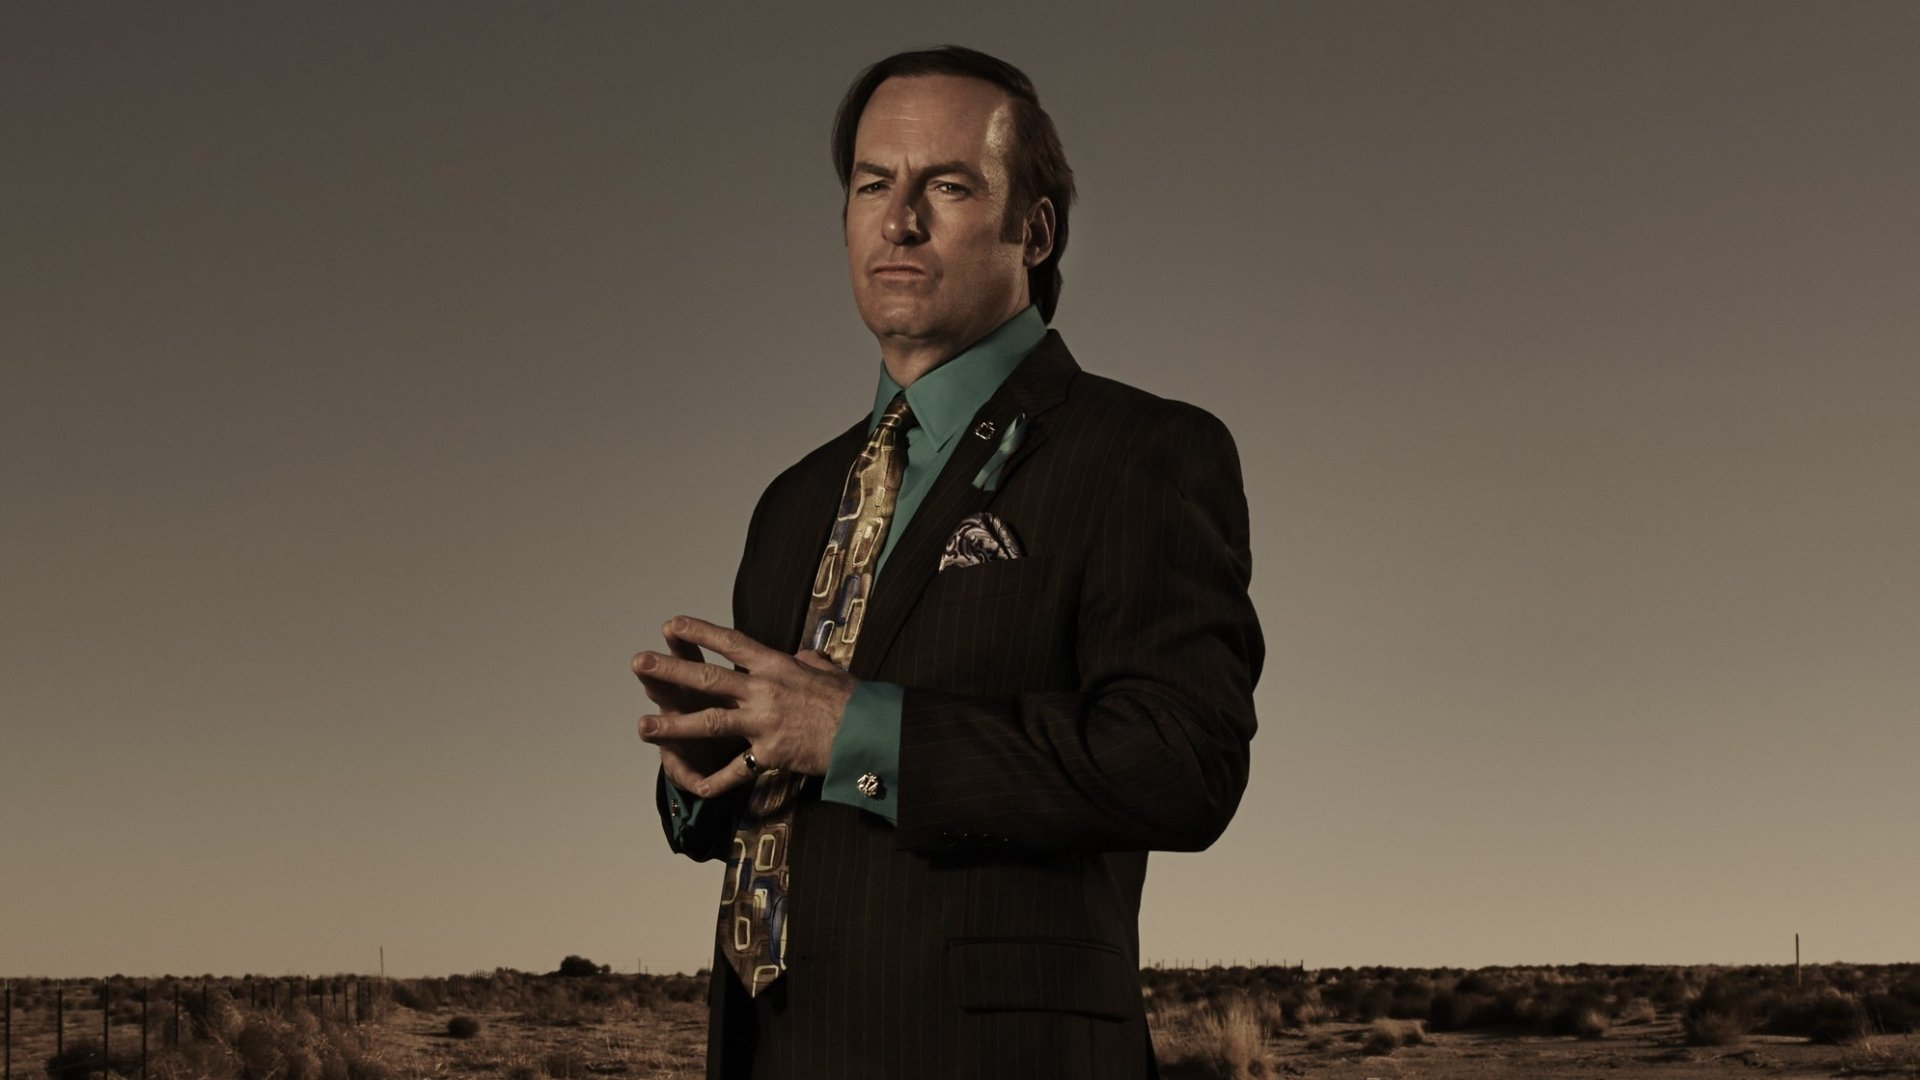 Breaking Bad Hd Iphone Wallpaper Better Call Saul Wallpapers Pictures Images